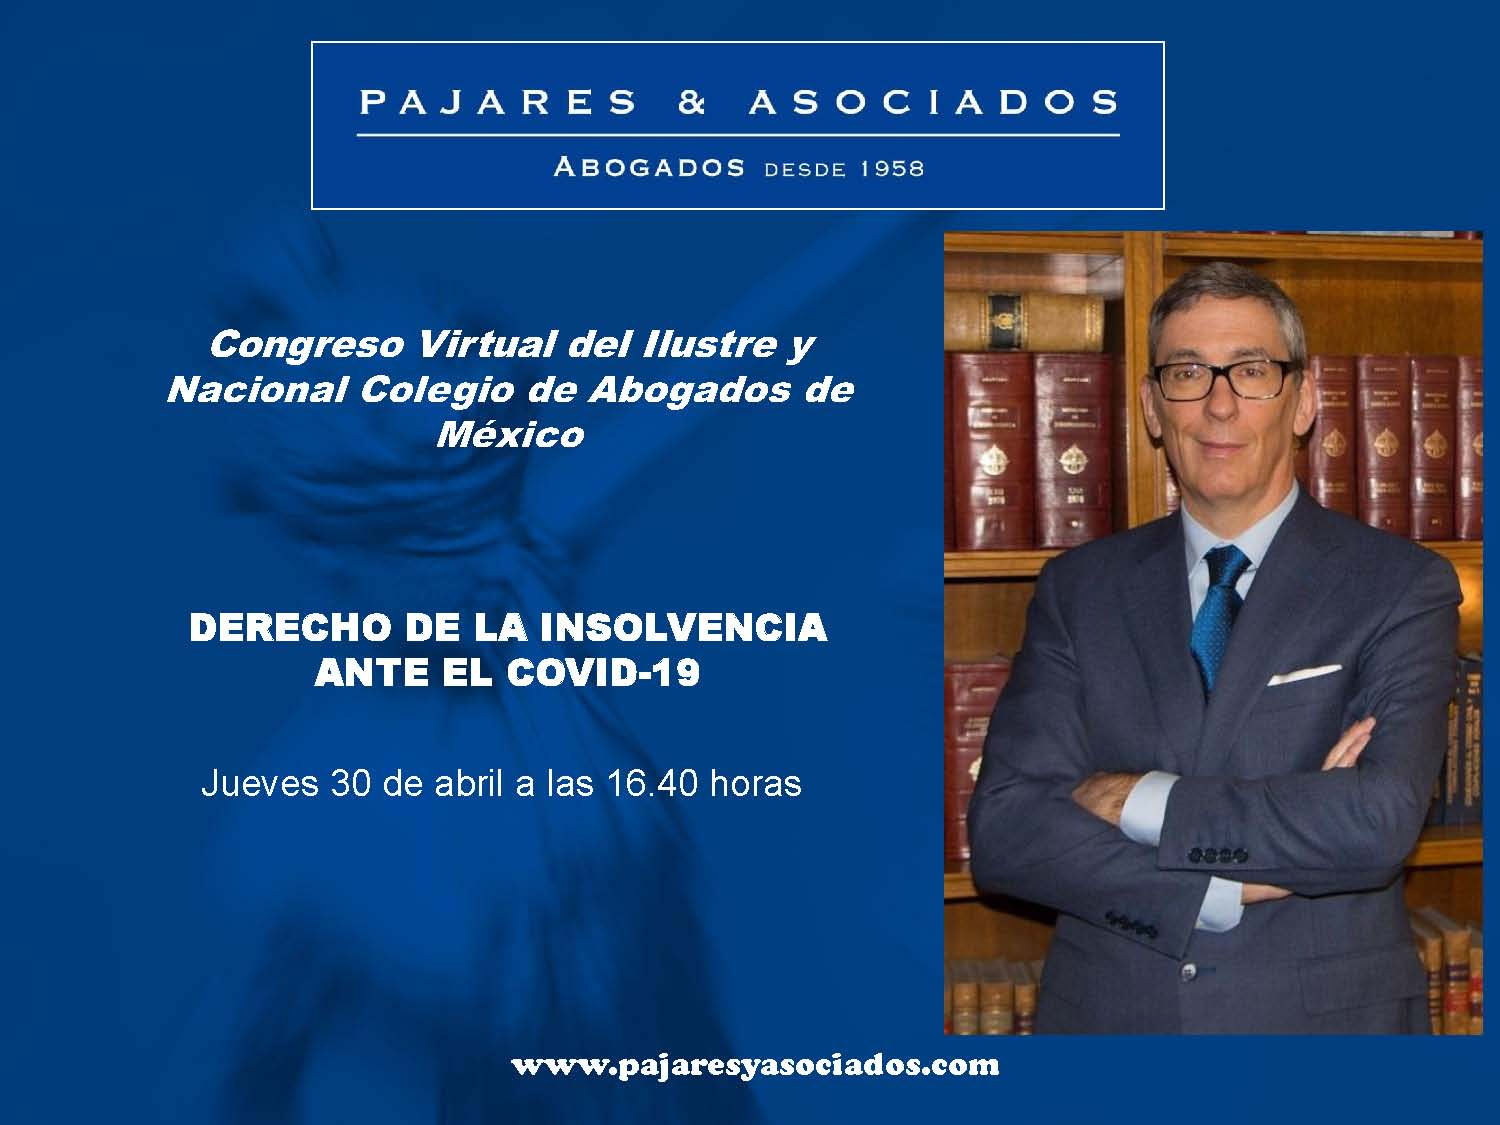 RIGHT OF INSOLVENCY BEFORE EL COVID-19